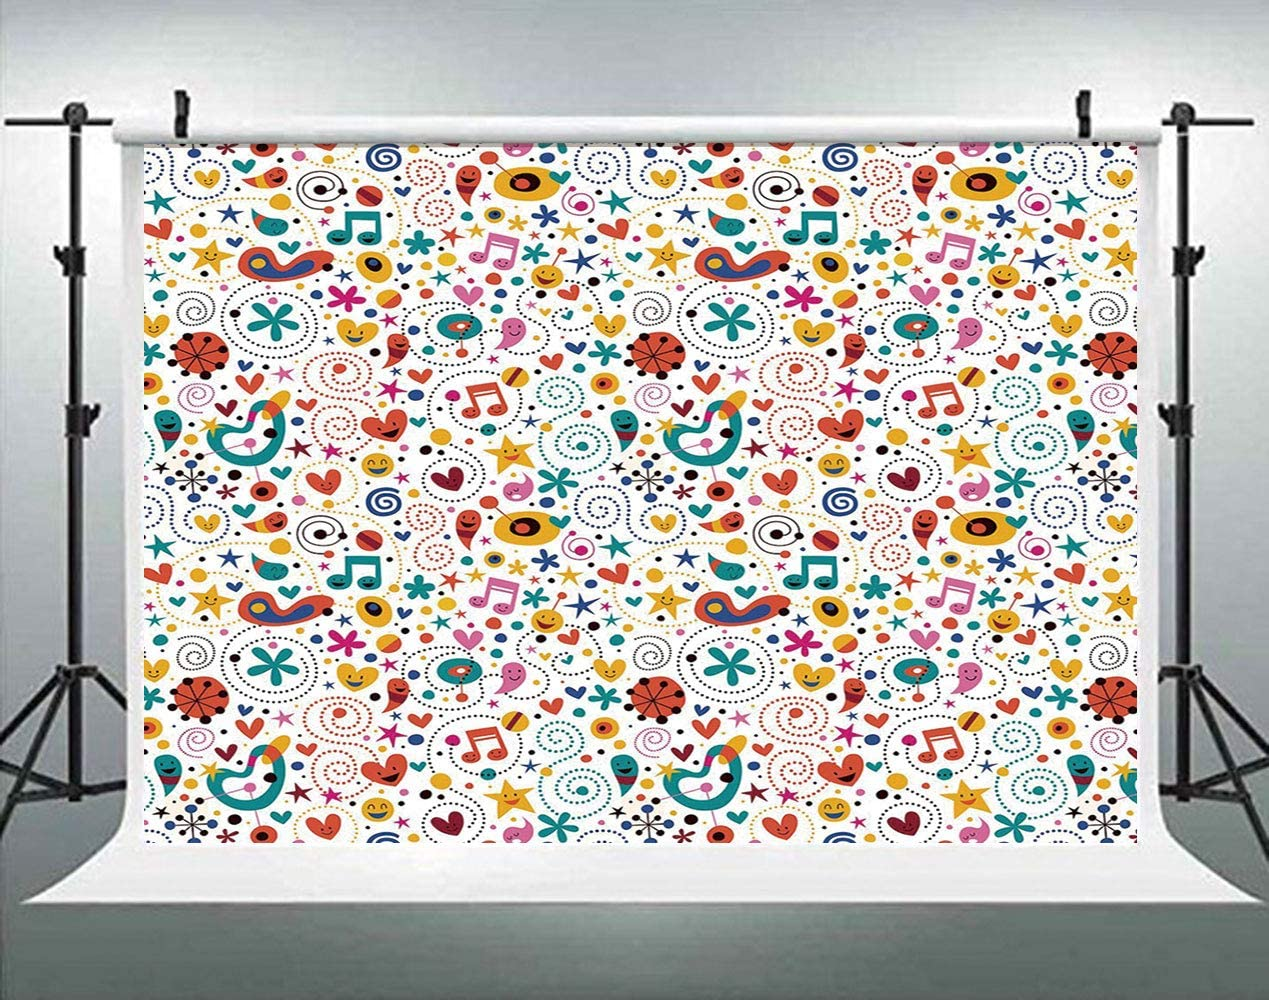 ALUONI 7x5ft Kids,Vintage Cars Collection in Vivid Colors with Little Hearts Backdrop for Photography Photo Background Props Photography AM019421